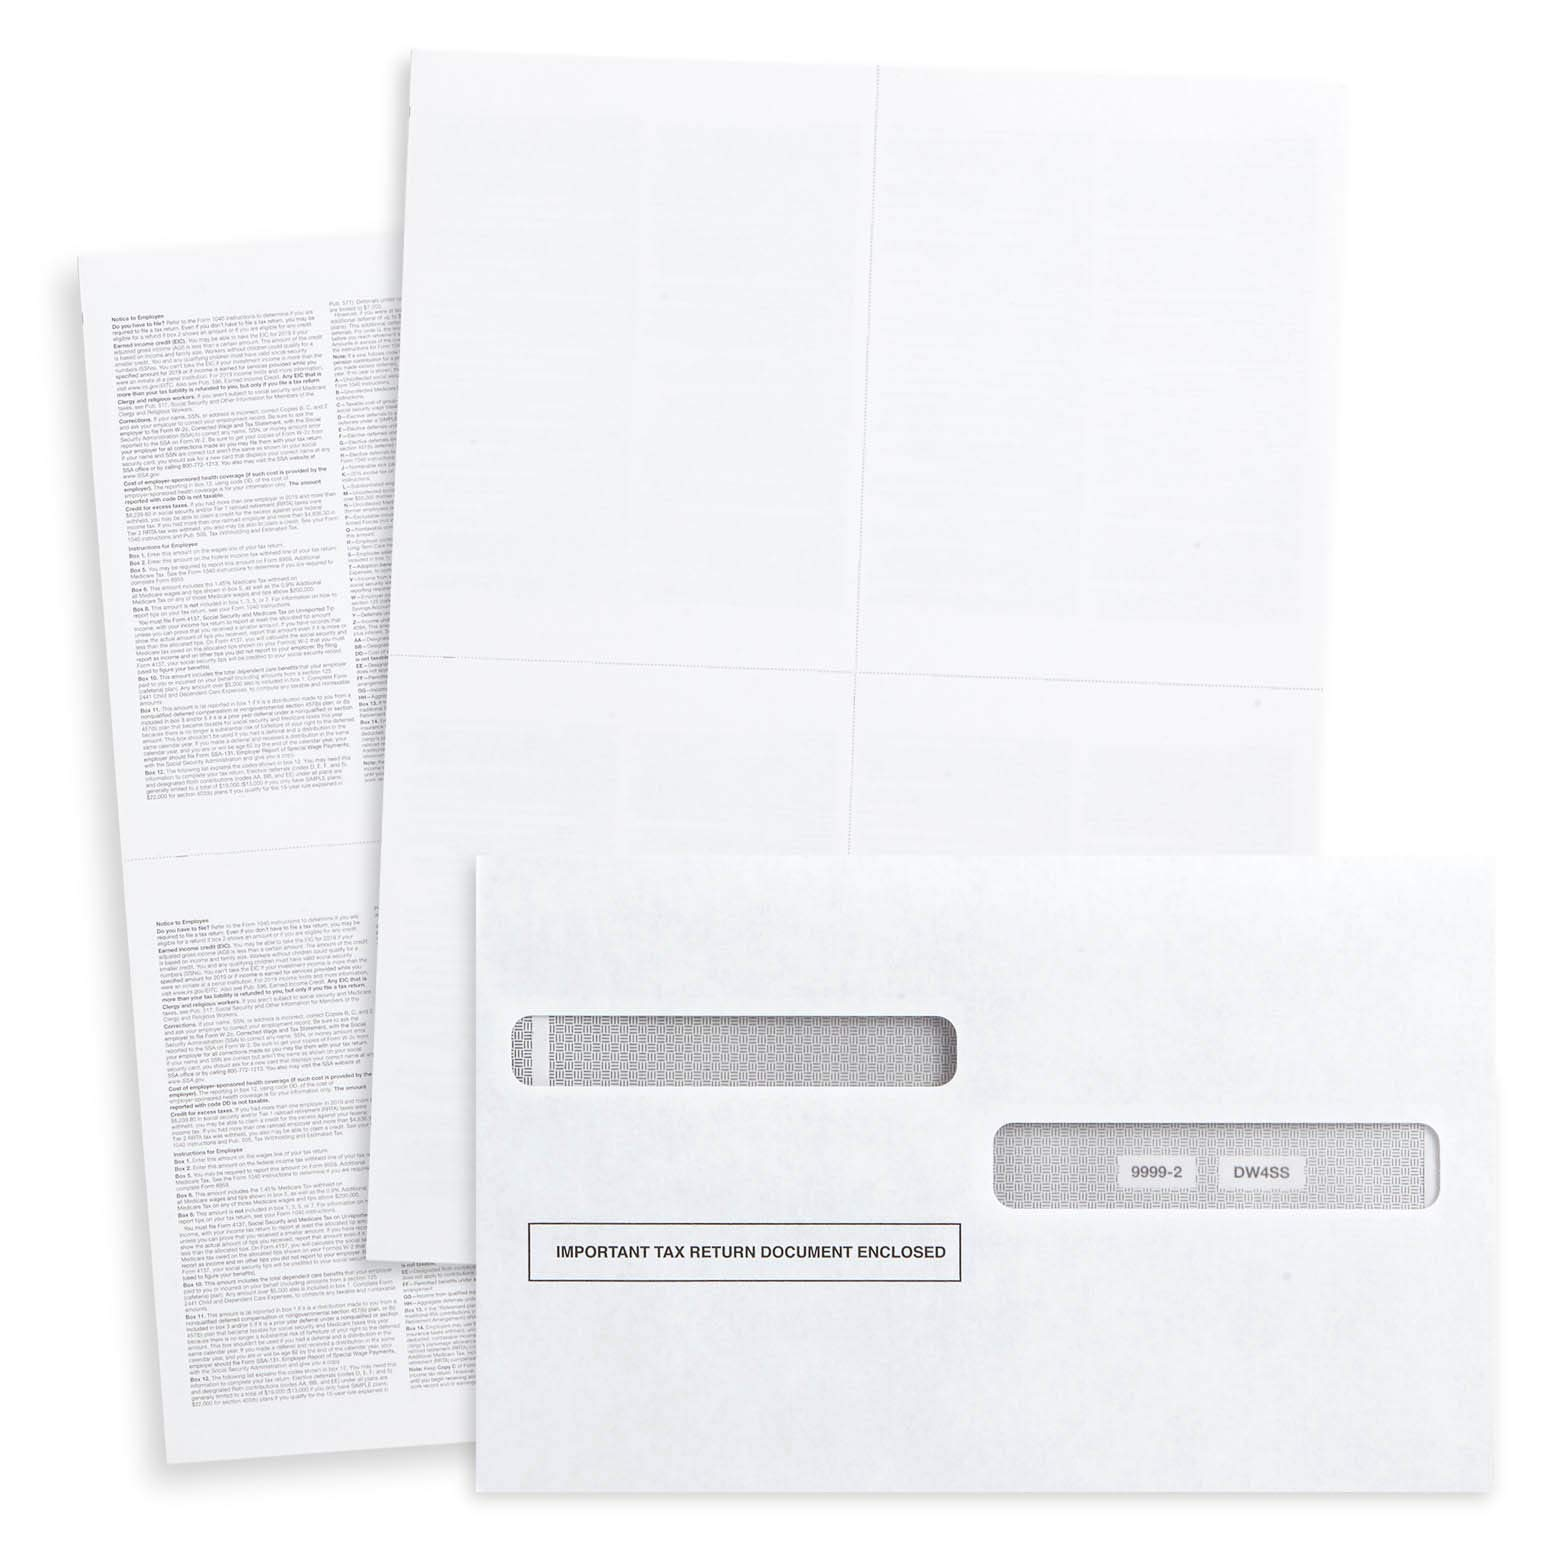 Blank 2019 W2 4-Up Tax Forms, 100 Employee Sets, Designed for QuickBooks and Accounting Software, Ideal for E-Filing, Works with Laser or Inkjet Printers, 100 Sheets and 100 Self Seal Envelopes by Blue Summit Supplies